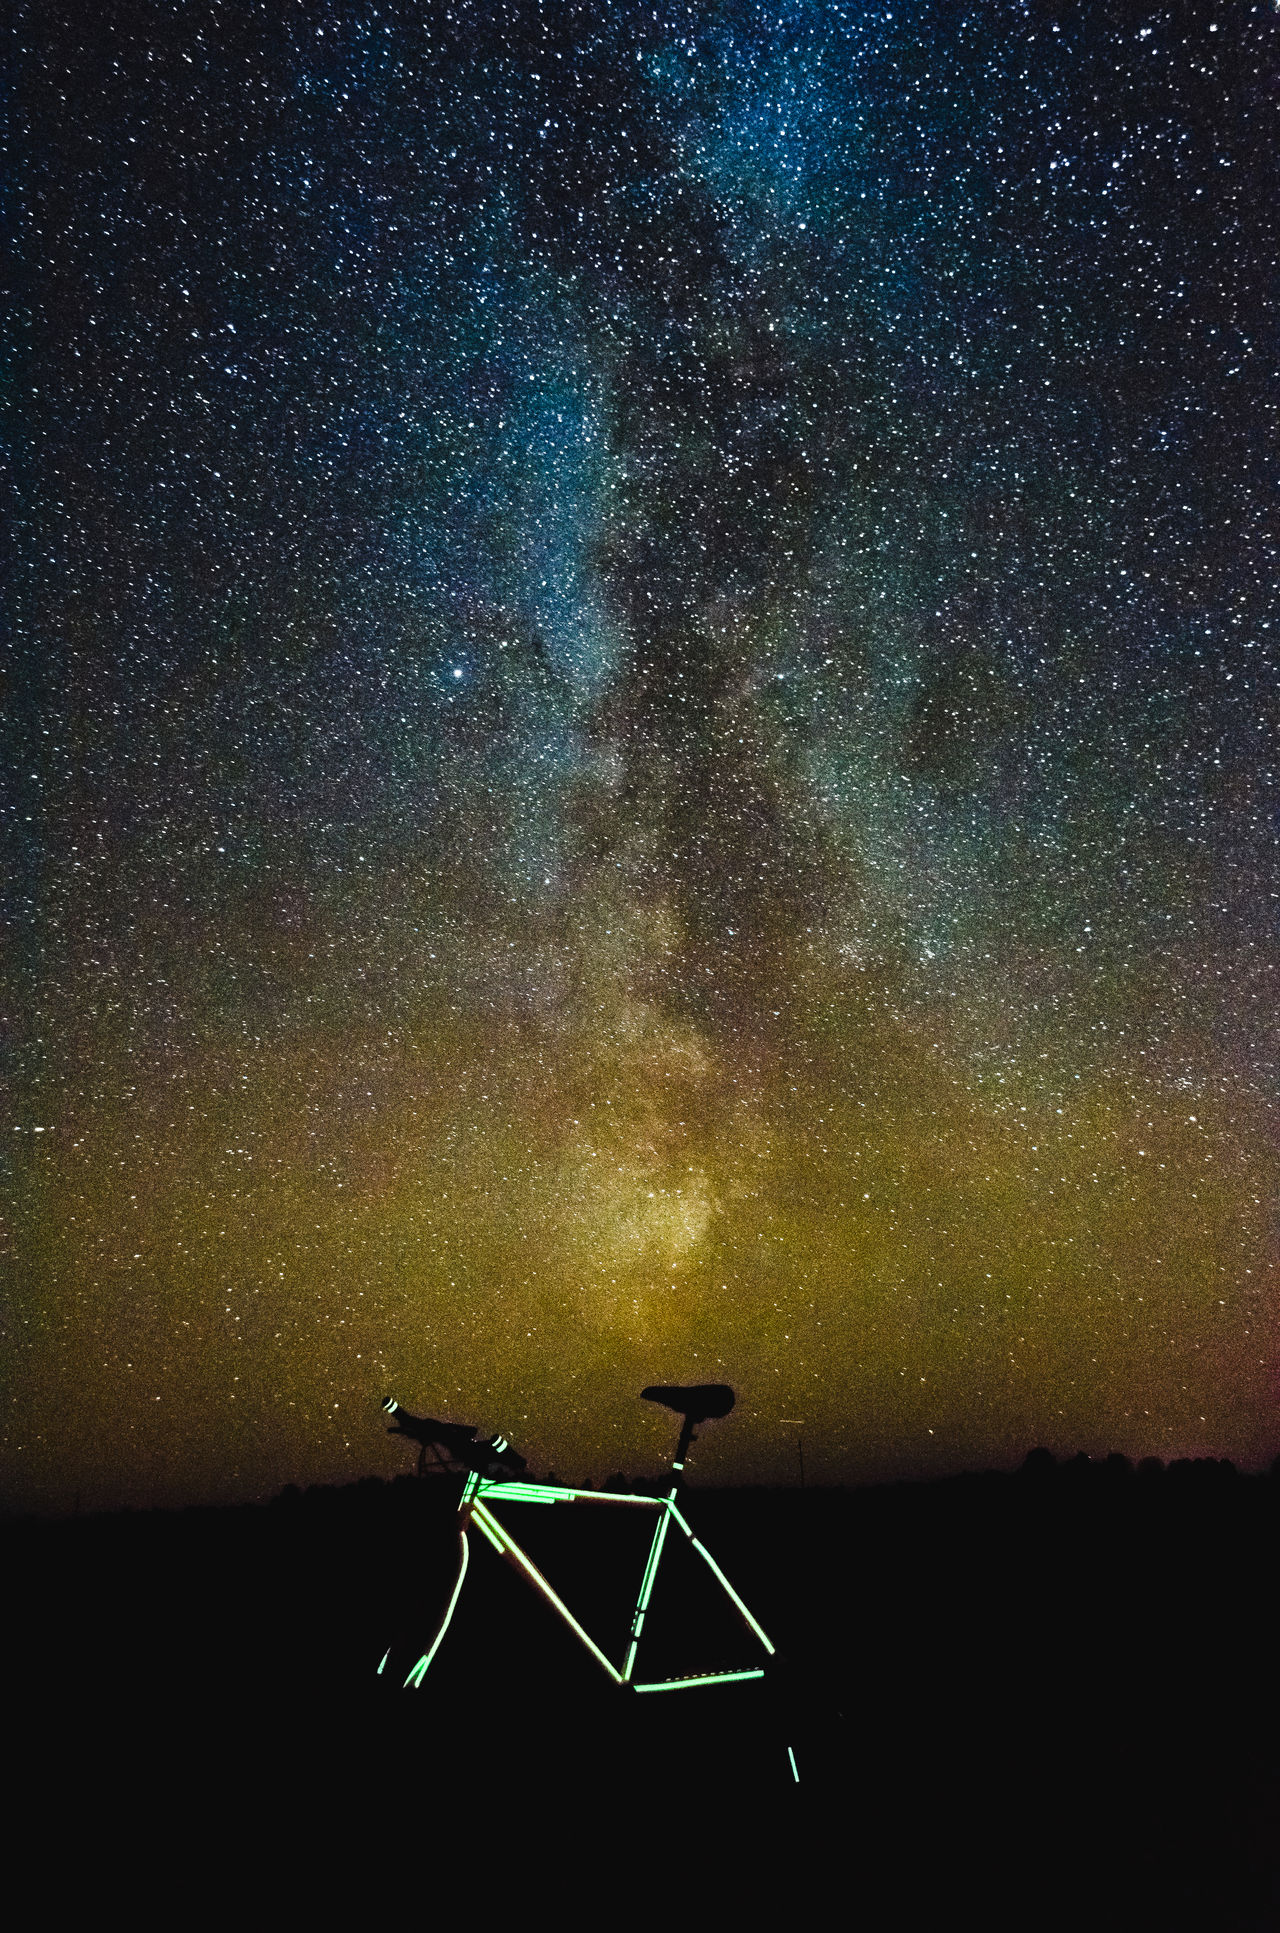 Milky way and glowing bike Alternative Energy Astronomy Beauty In Nature Constellation Galaxy Glow In The Dark Glowing Milky Way Nature Night No People Outdoors Scenics Sky Space Star - Space Star Field EyeEmNewHere